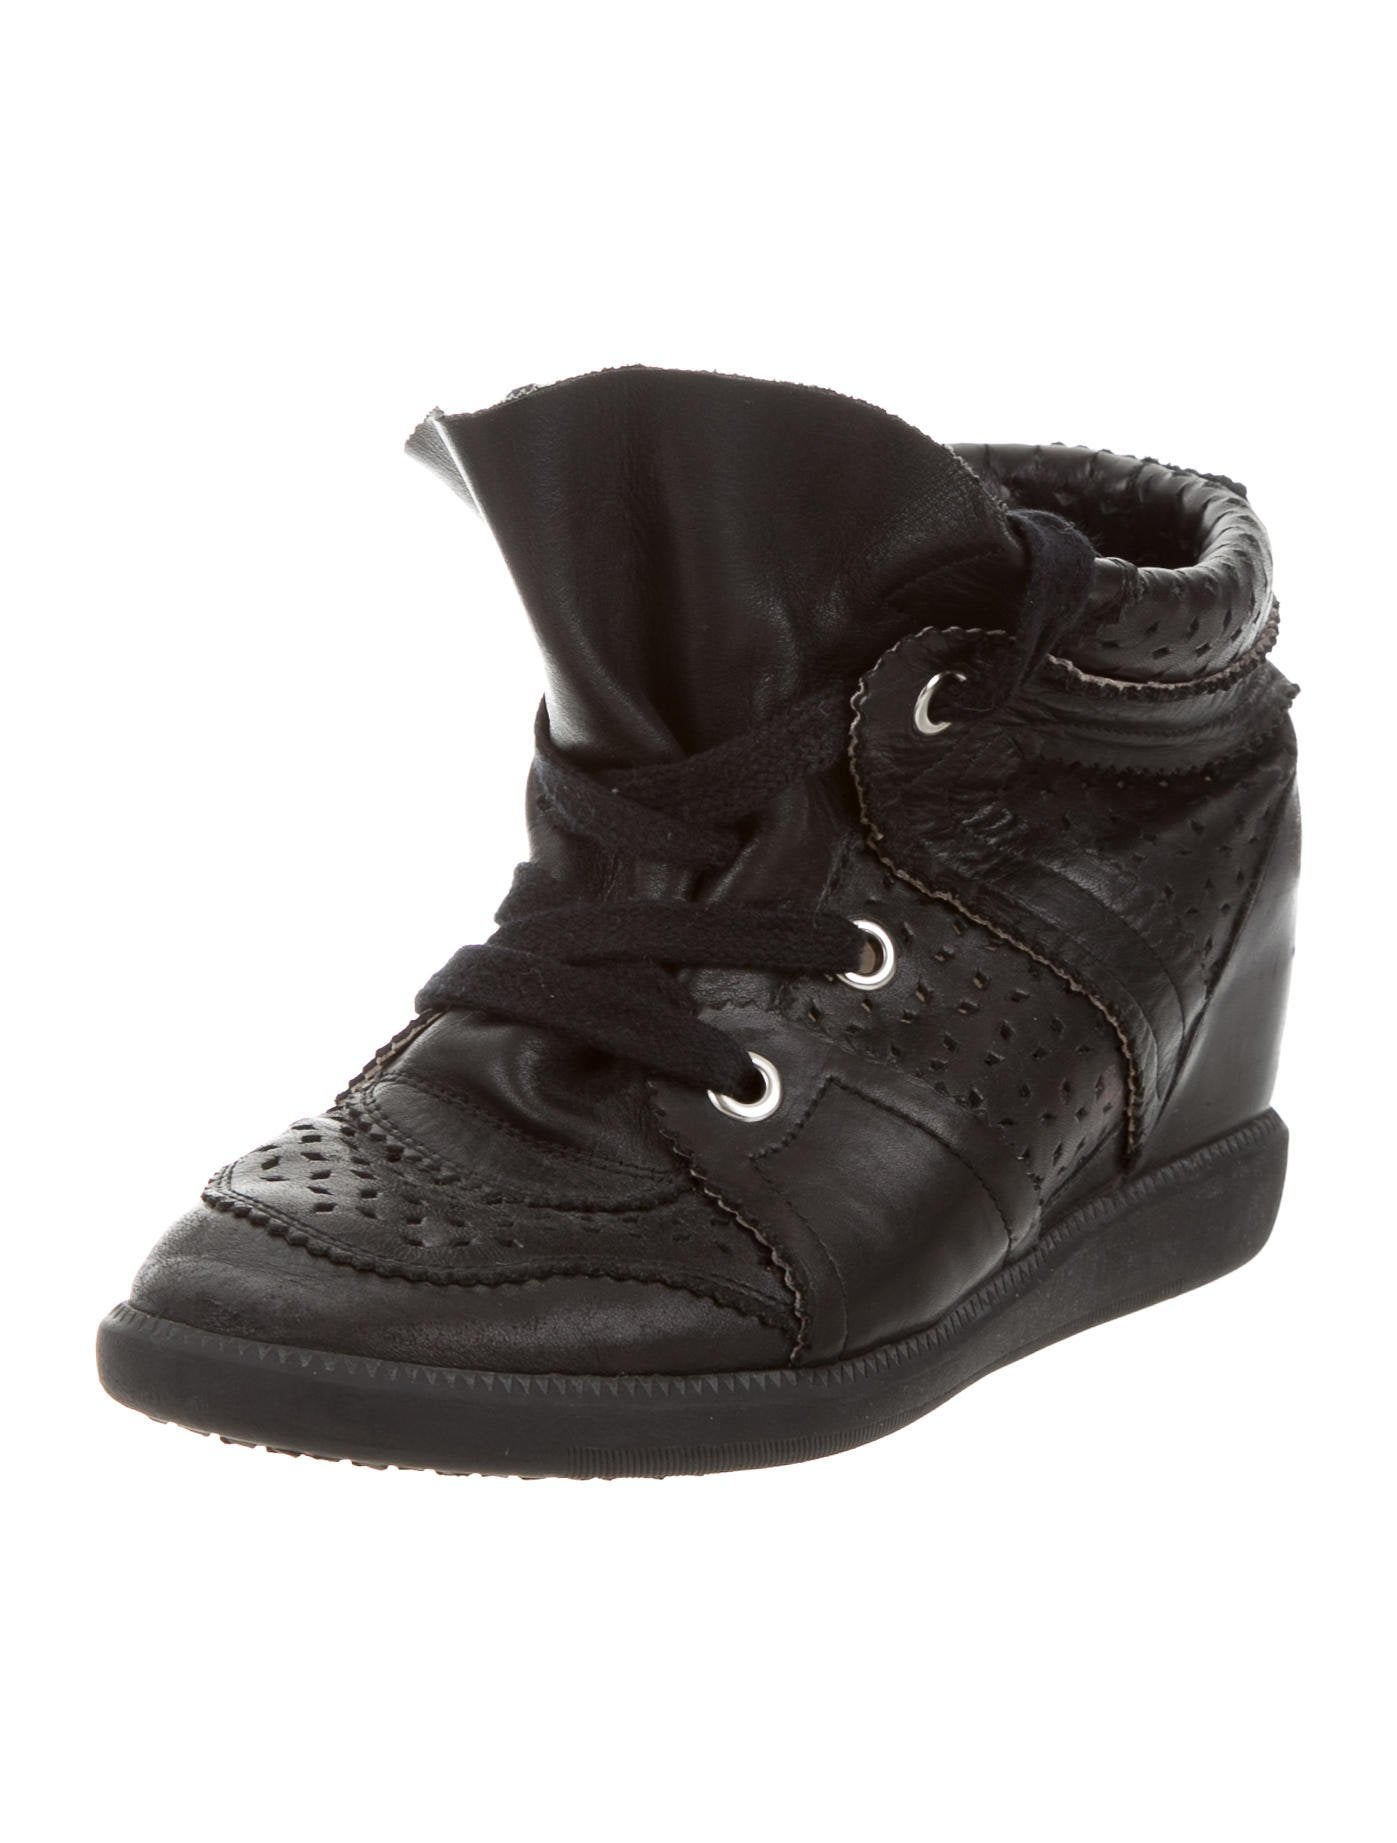 isabel marant bobby wedge sneakers shoes isa45419 the realreal. Black Bedroom Furniture Sets. Home Design Ideas